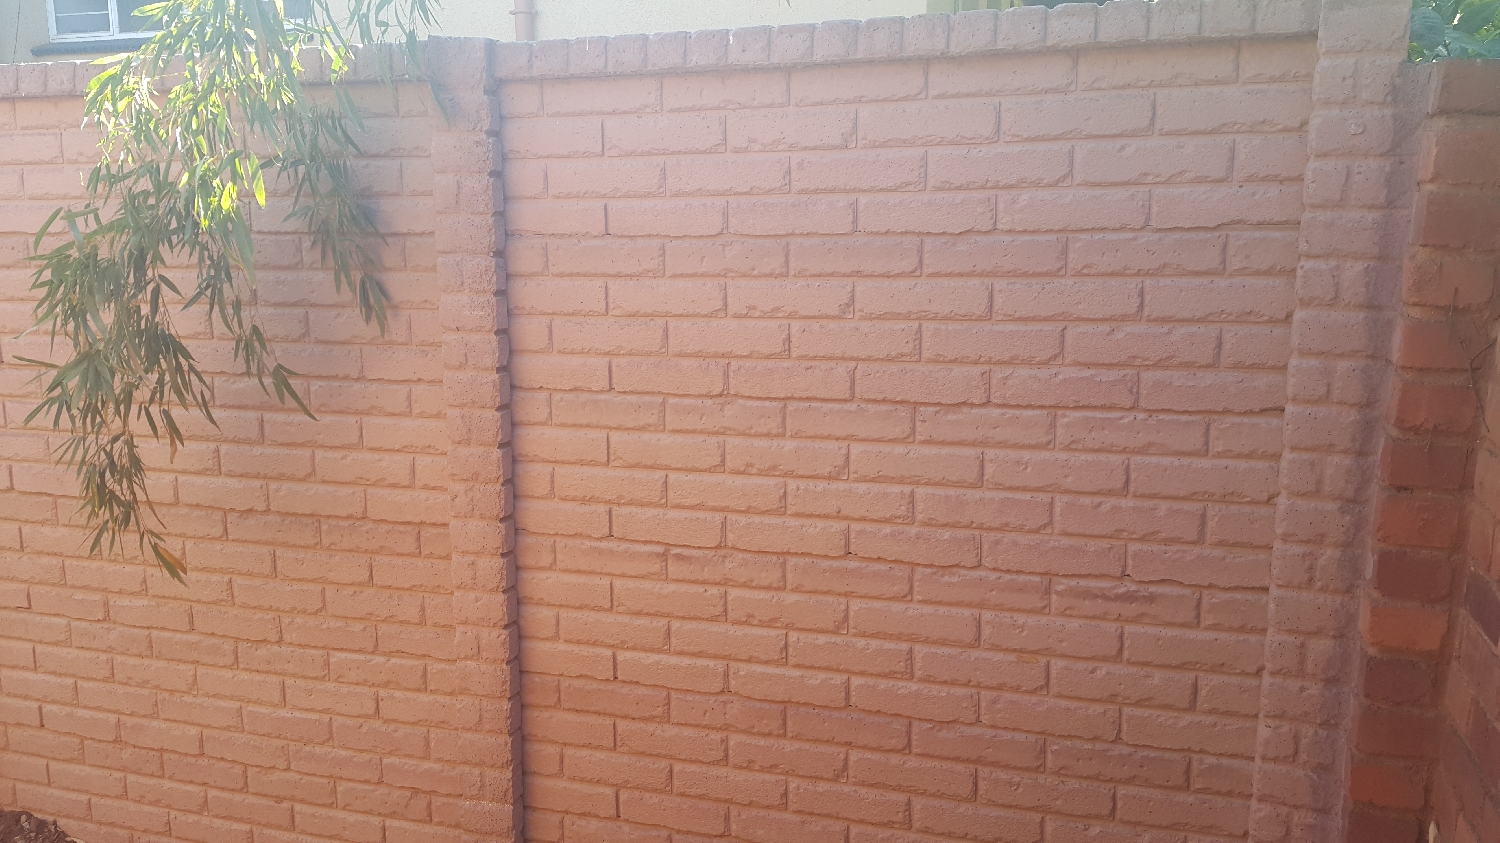 plum-coloured-brickcrete-concrete-precast-wall-without-stripes